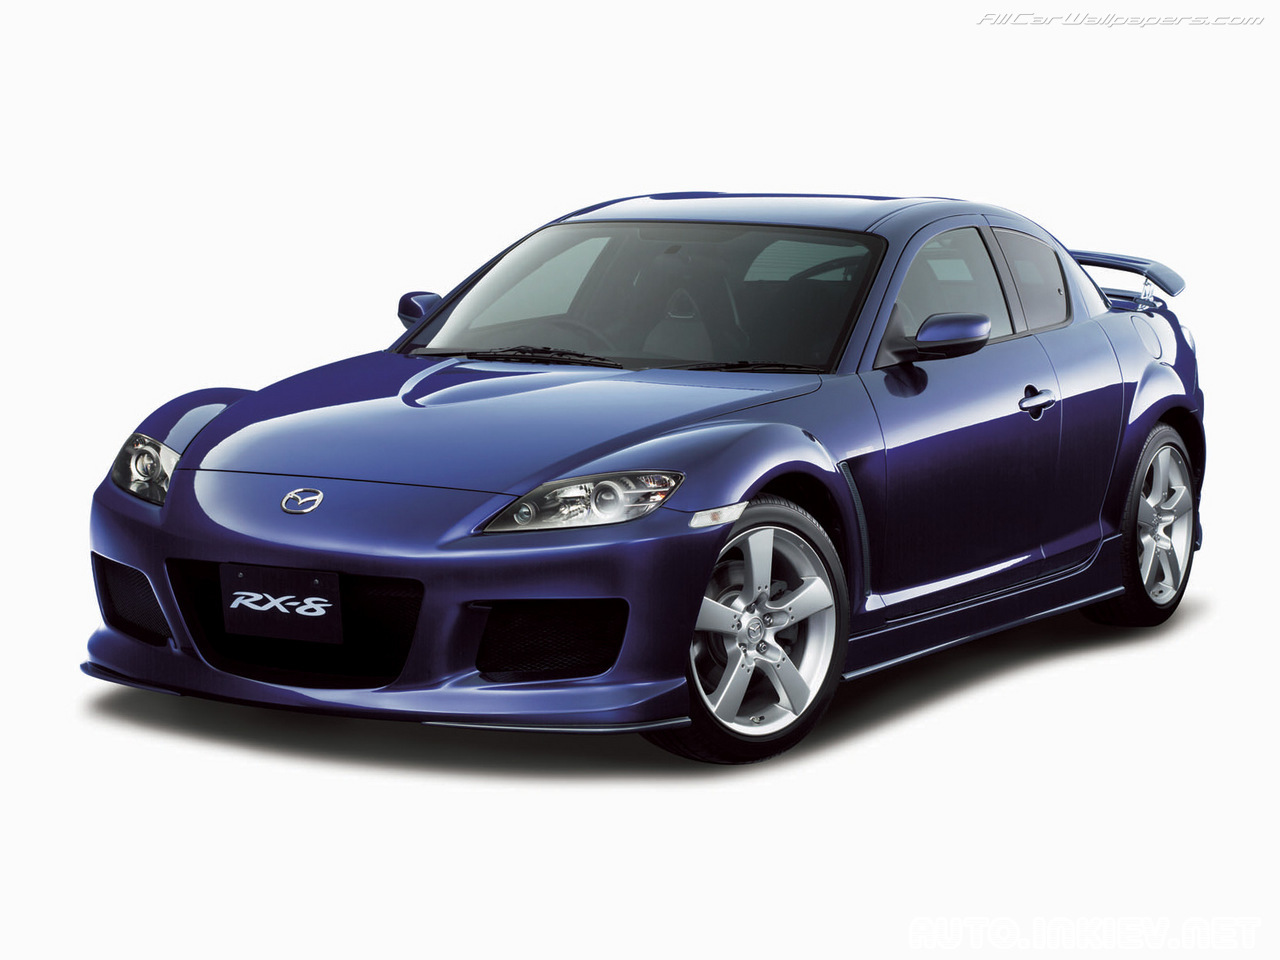 mazda rx8 related images start 0 weili automotive network. Black Bedroom Furniture Sets. Home Design Ideas